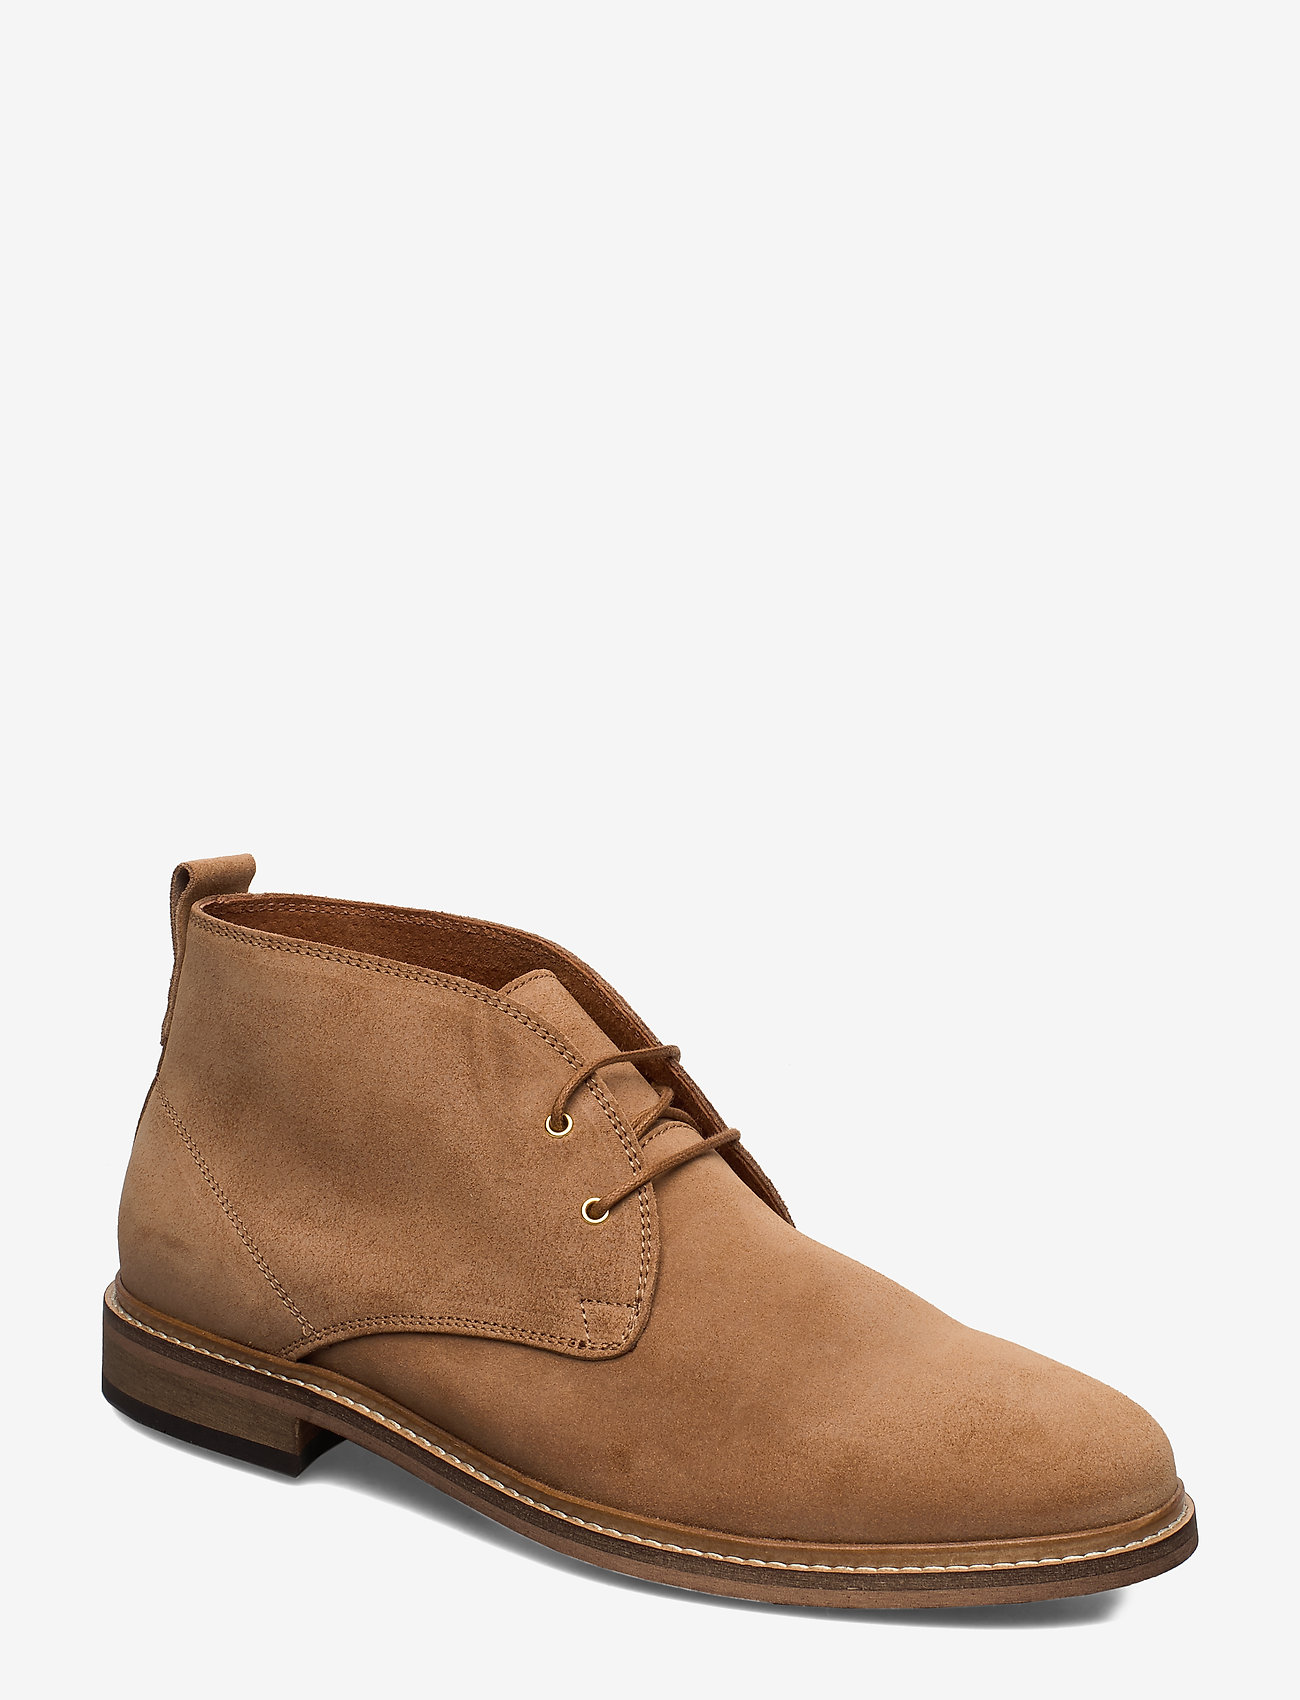 Shoe The Bear - STB-CALEB S - desert boots - camel - 0